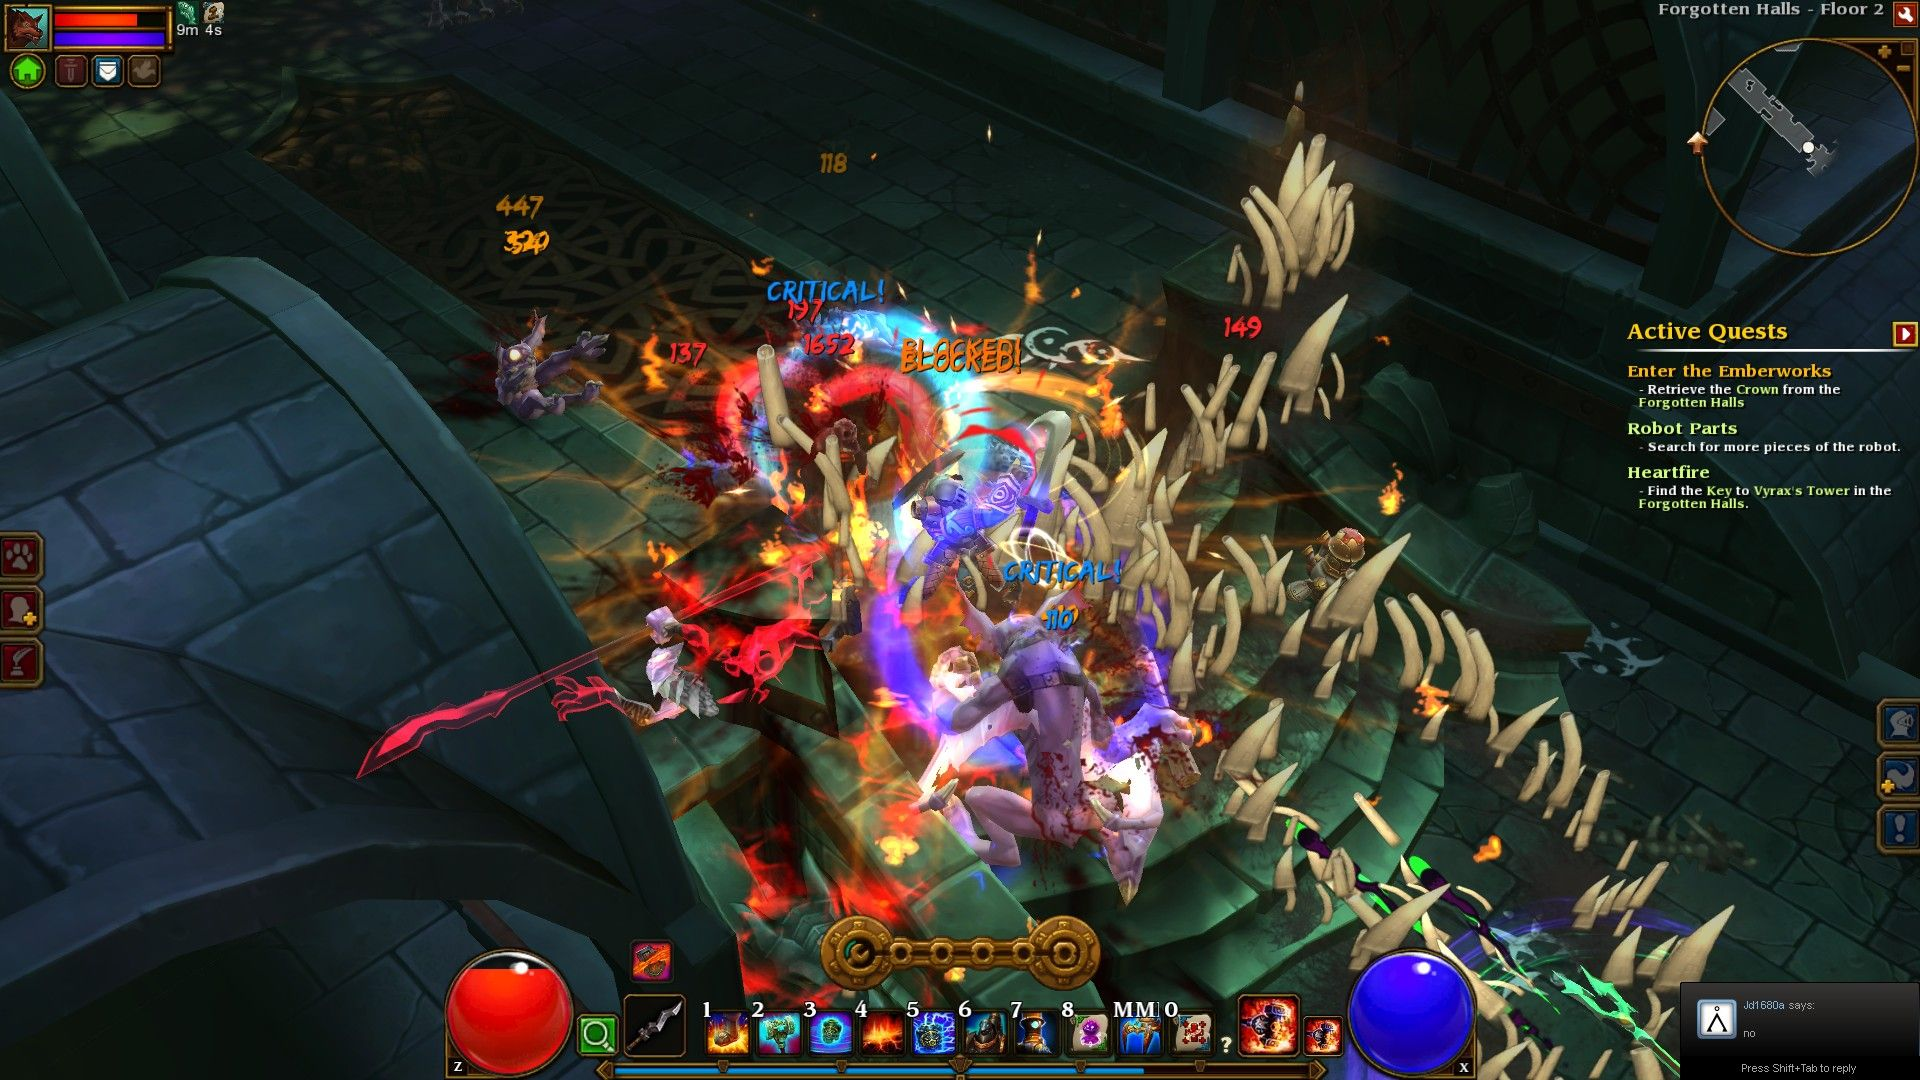 torchlight 2 screenshots image 10094 new game network. Black Bedroom Furniture Sets. Home Design Ideas